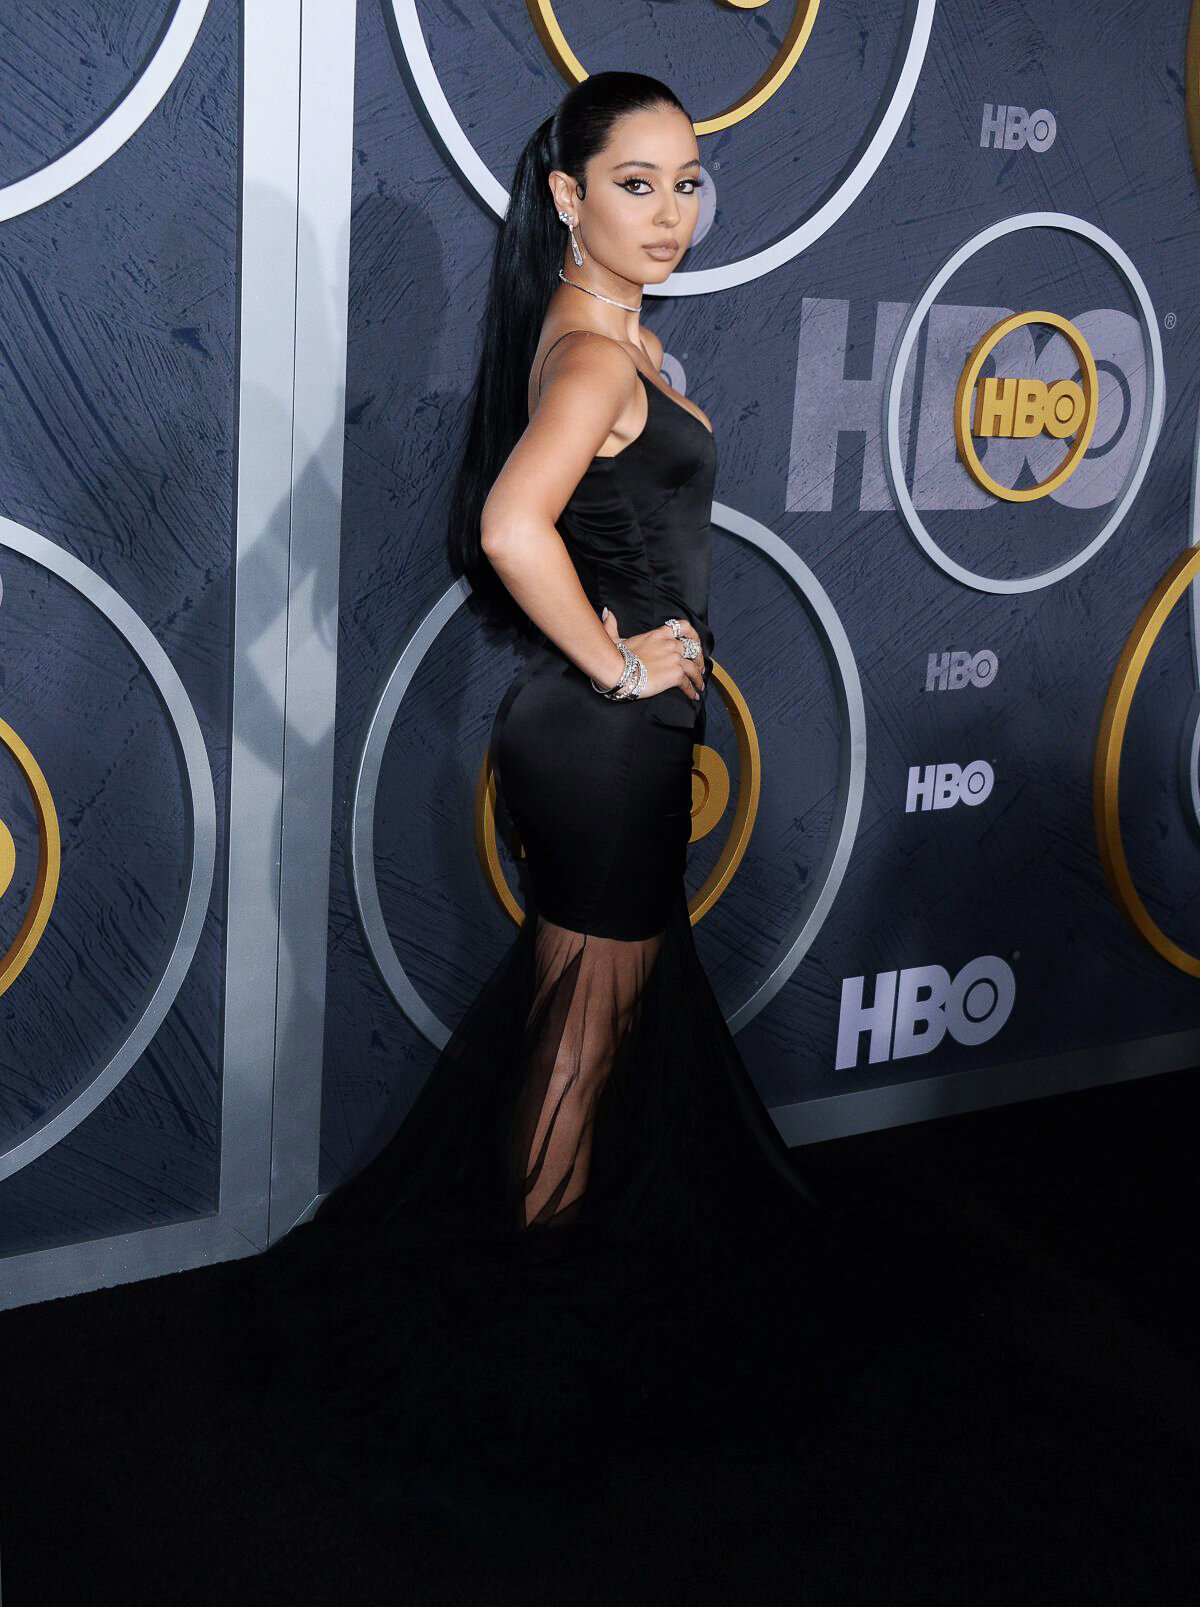 alexa-demie-at-hbo-primetime-emmy-awards-2019-afterparty-in-los-angeles-09-22-2019-0new.jpg